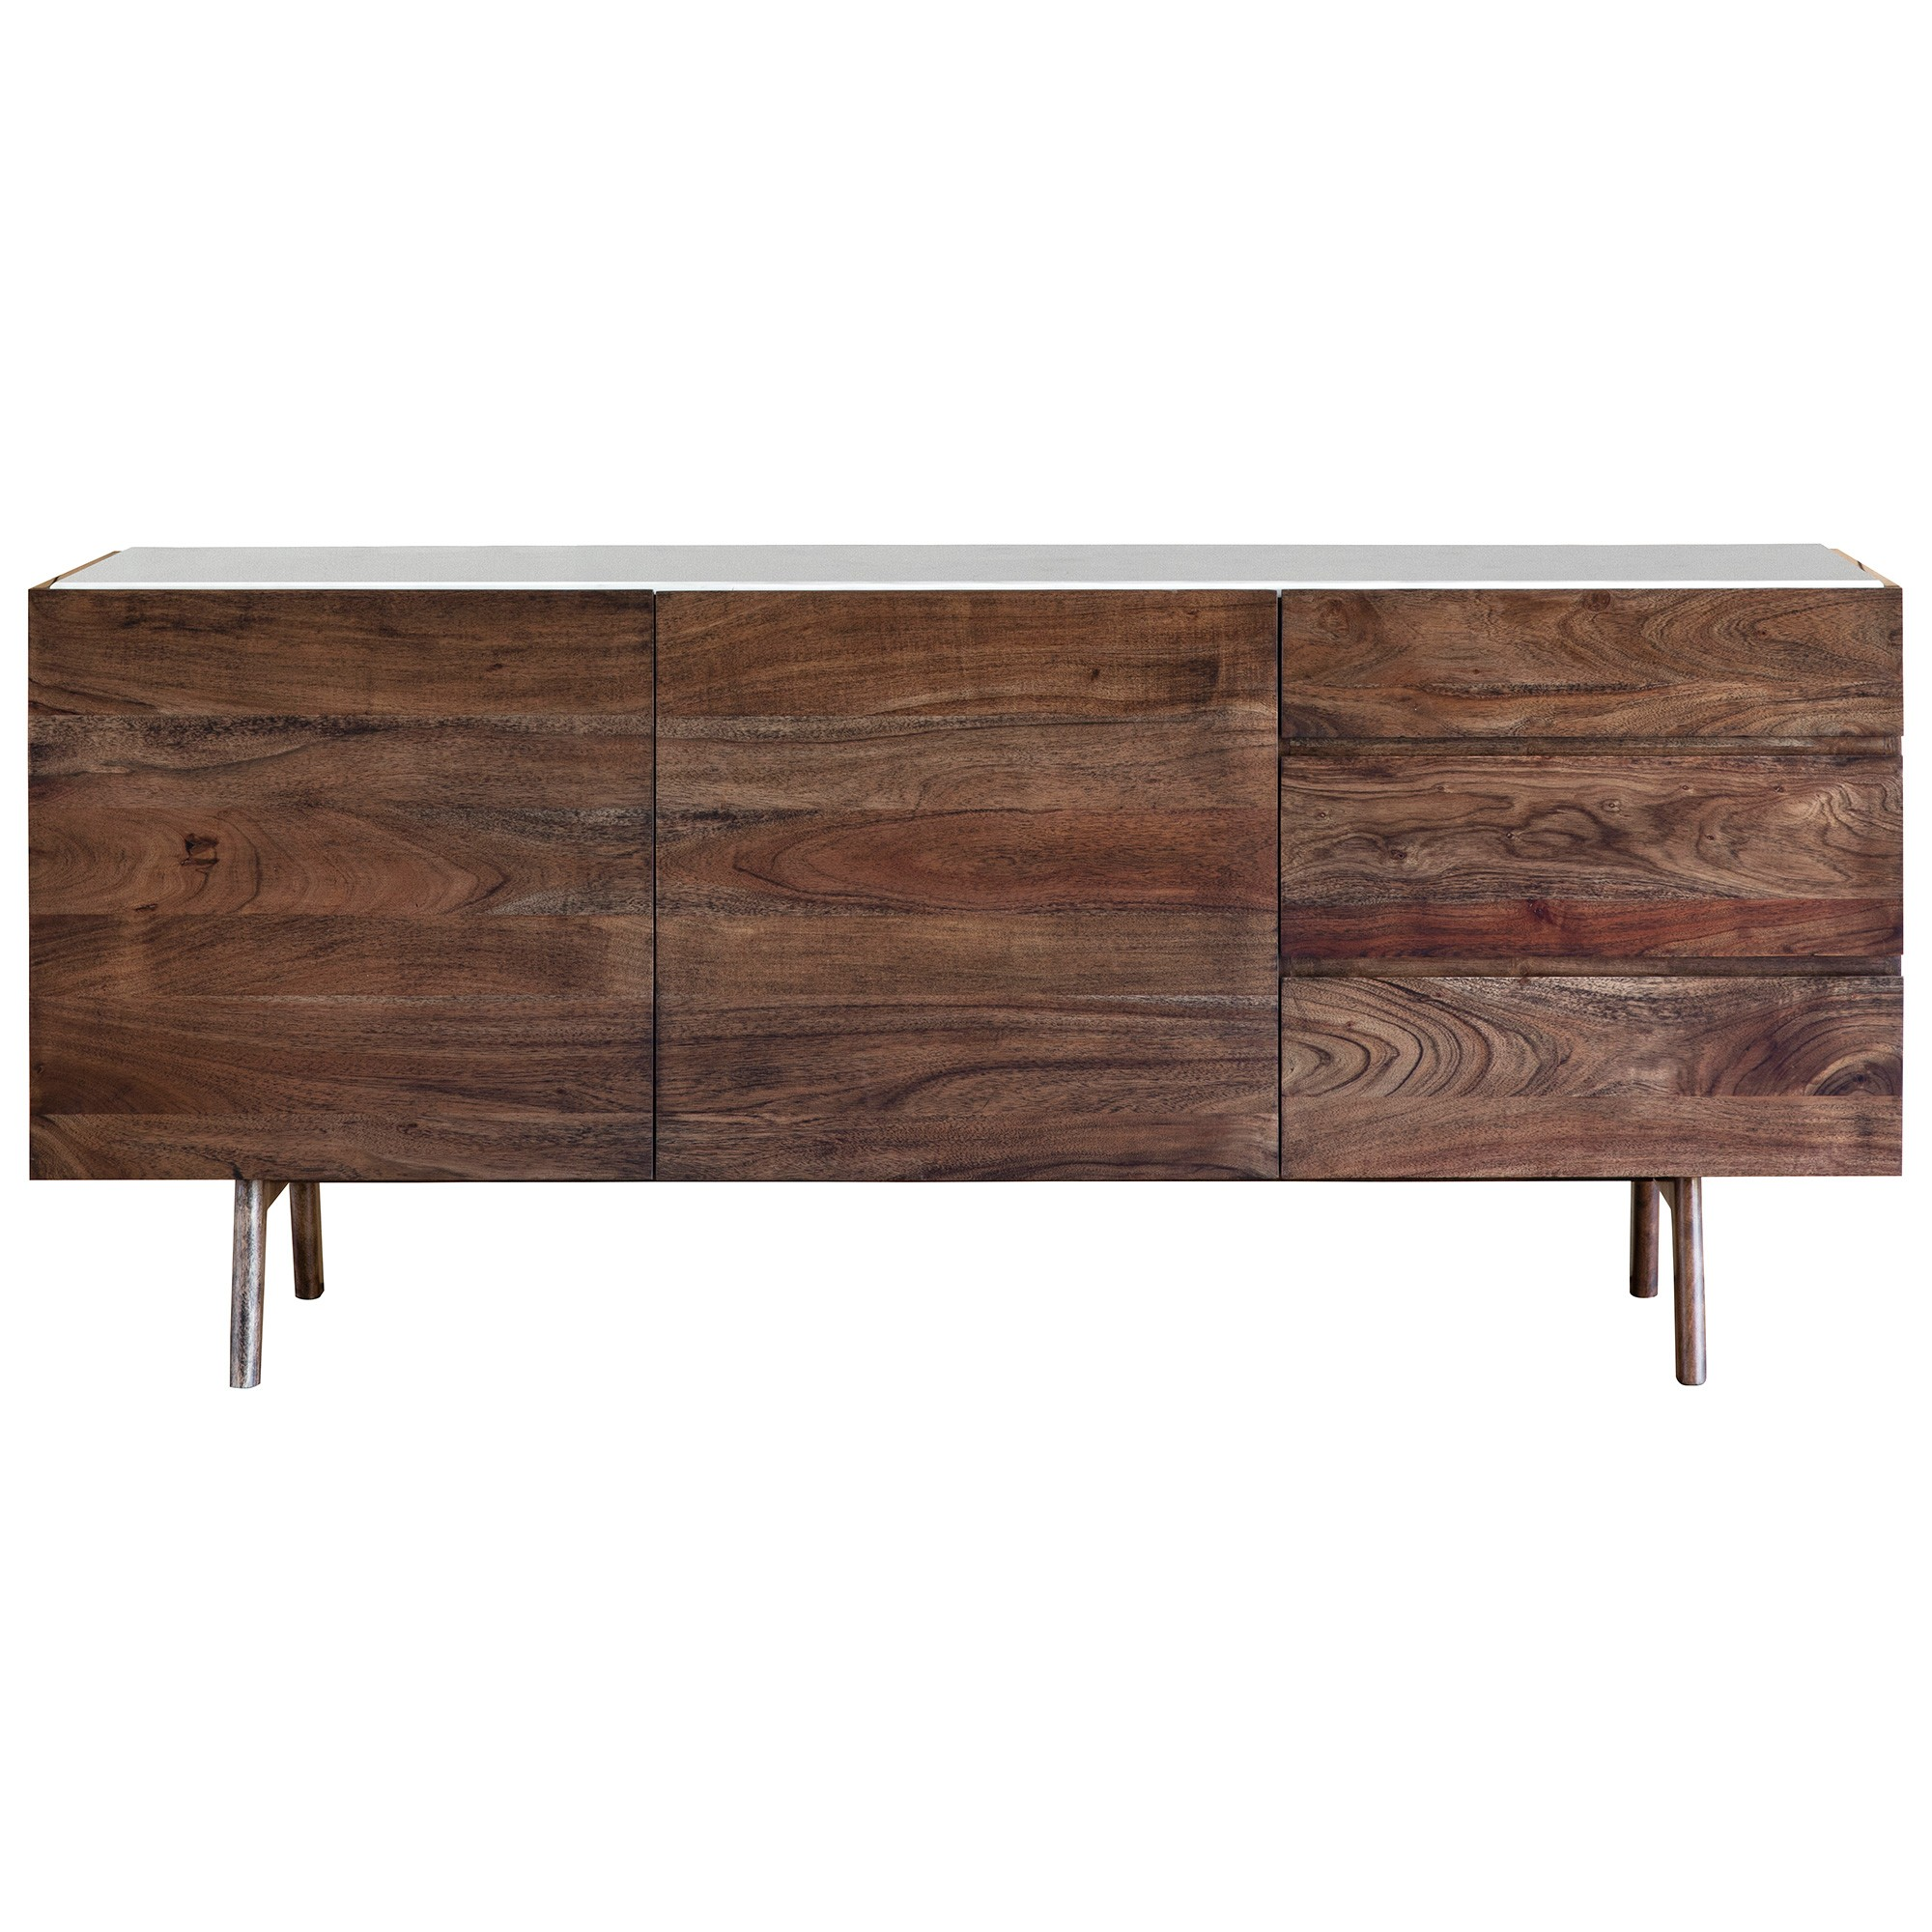 Burford Marble Topped Acacia Timber 2 Door 3 Drawer Sideboard, 160cm